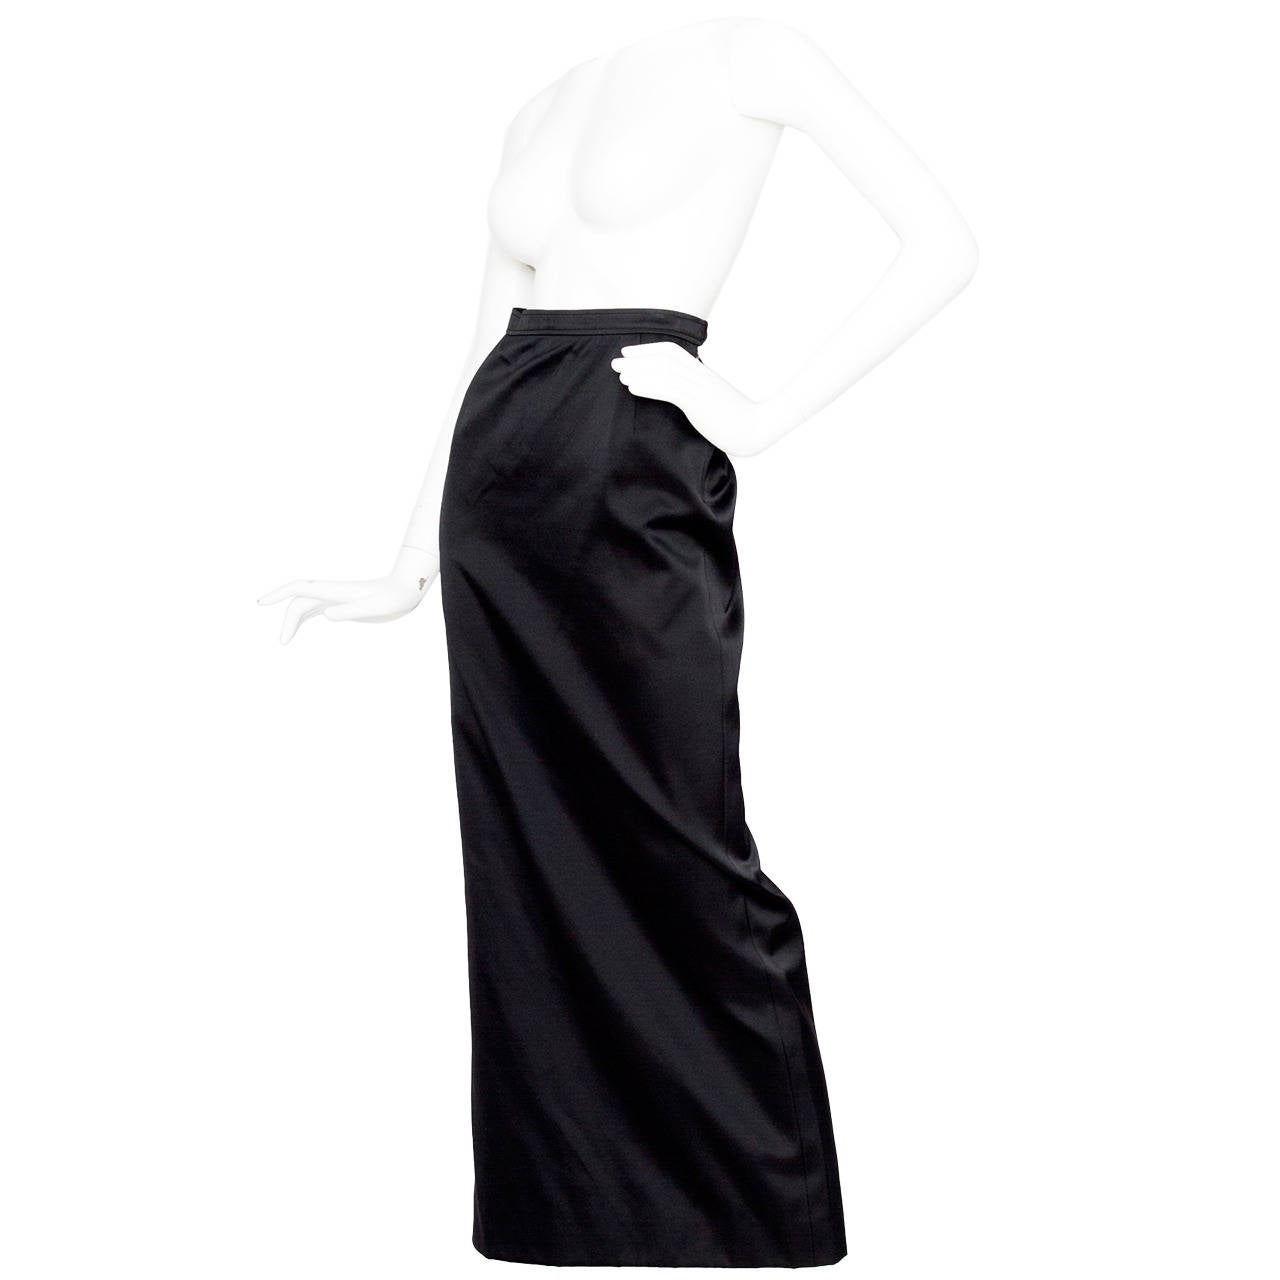 1990s Yves Saint Laurent Black Silk Satin Evening Skirt